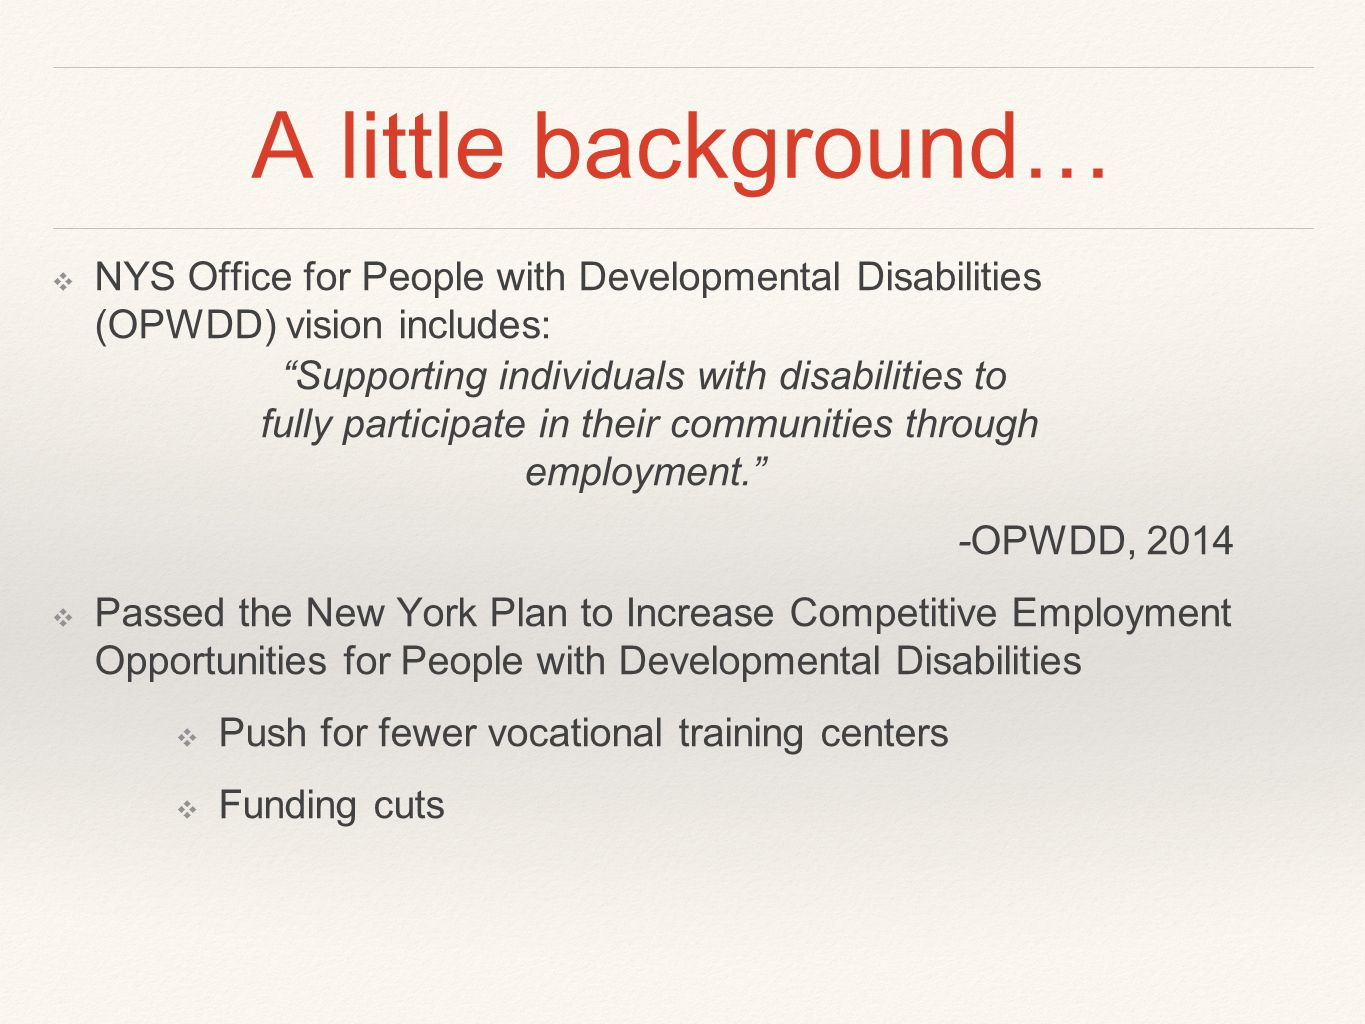 A little background… ❖ NYS Office for People with Developmental Disabilities (OPWDD) vision includes: Supporting individuals with disabilities to fully participate in their communities through employment. -OPWDD, 2014 ❖ Passed the New York Plan to Increase Competitive Employment Opportunities for People with Developmental Disabilities ❖ Push for fewer vocational training centers ❖ Funding cuts